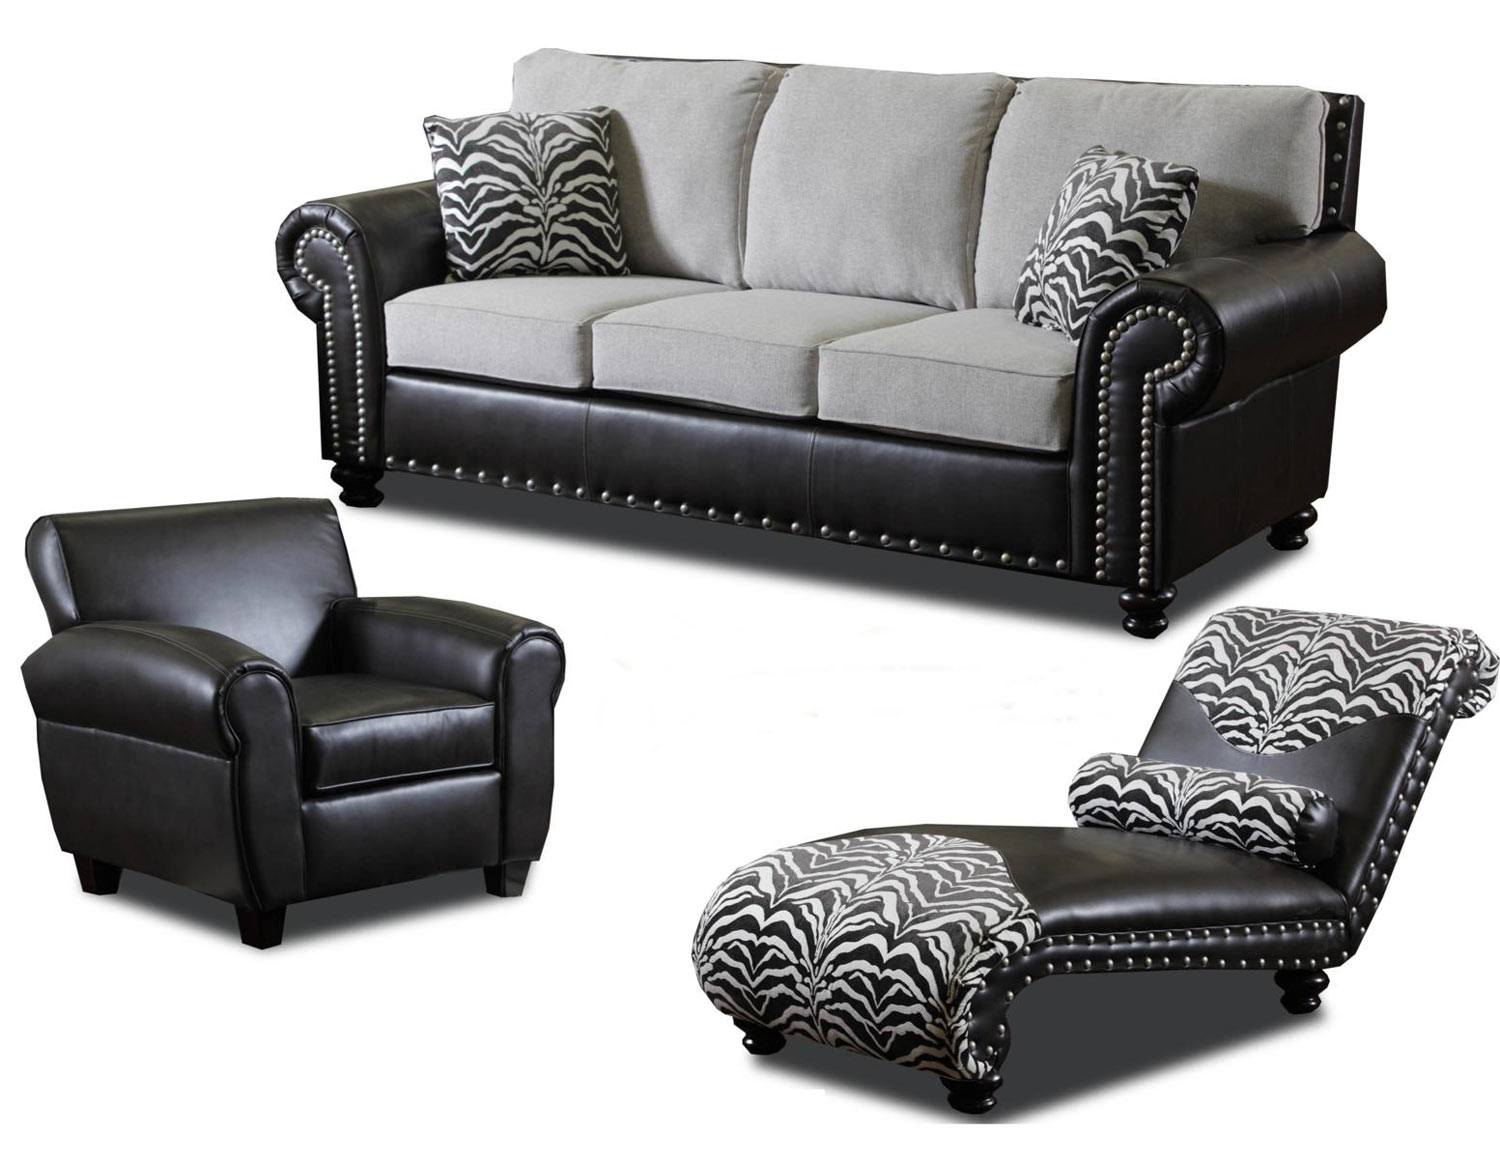 Chelsea Home Furniture Owasso Sofa Set - Unique Stone/Tempe Walnut 159020-Sofa-Set